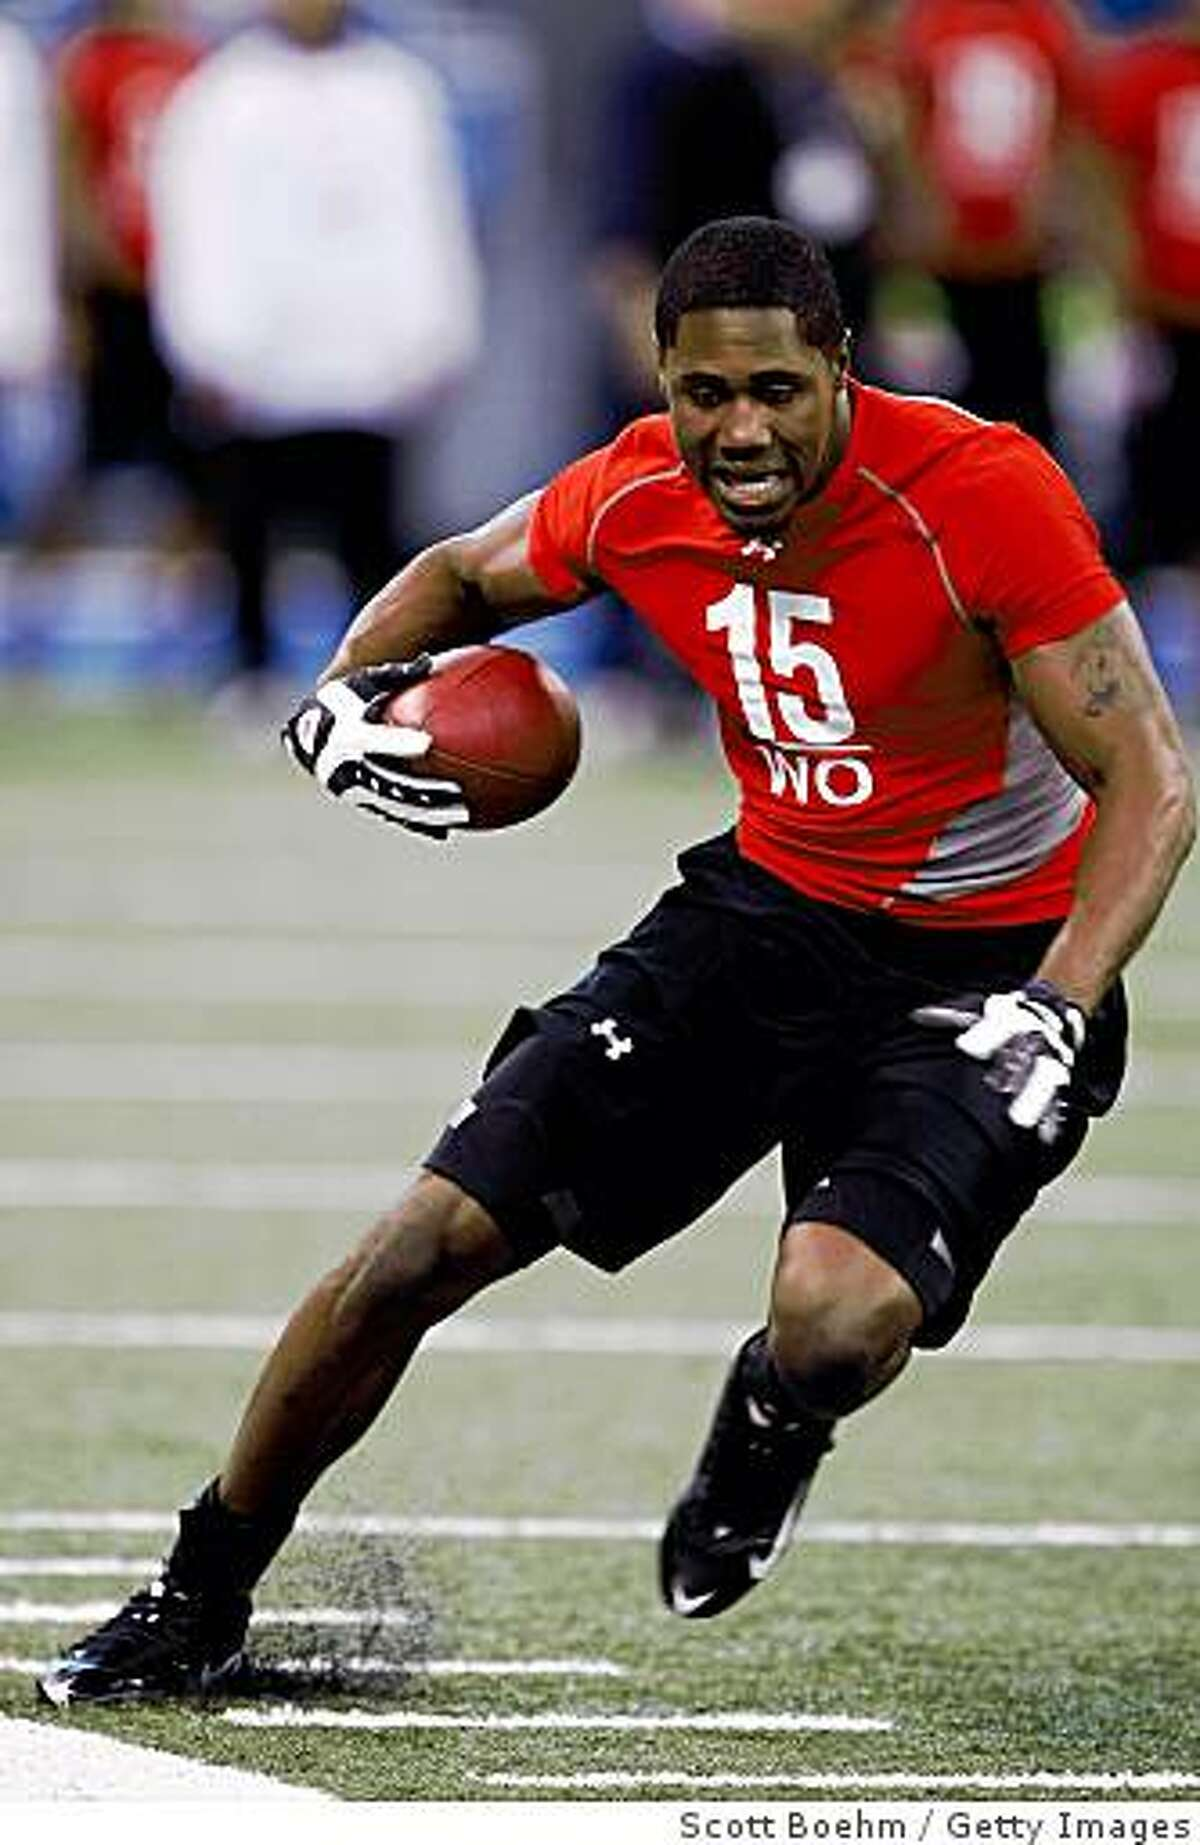 INDIANAPOLIS, IN - FEBRUARY 22: Wide receiver Darrius Heyward-Bey of Maryland runs with the football during the NFL Scouting Combine presented by Under Armour at Lucas Oil Stadium on February 22, 2009 in Indianapolis, Indiana. (Photo by Scott Boehm/Getty Images)